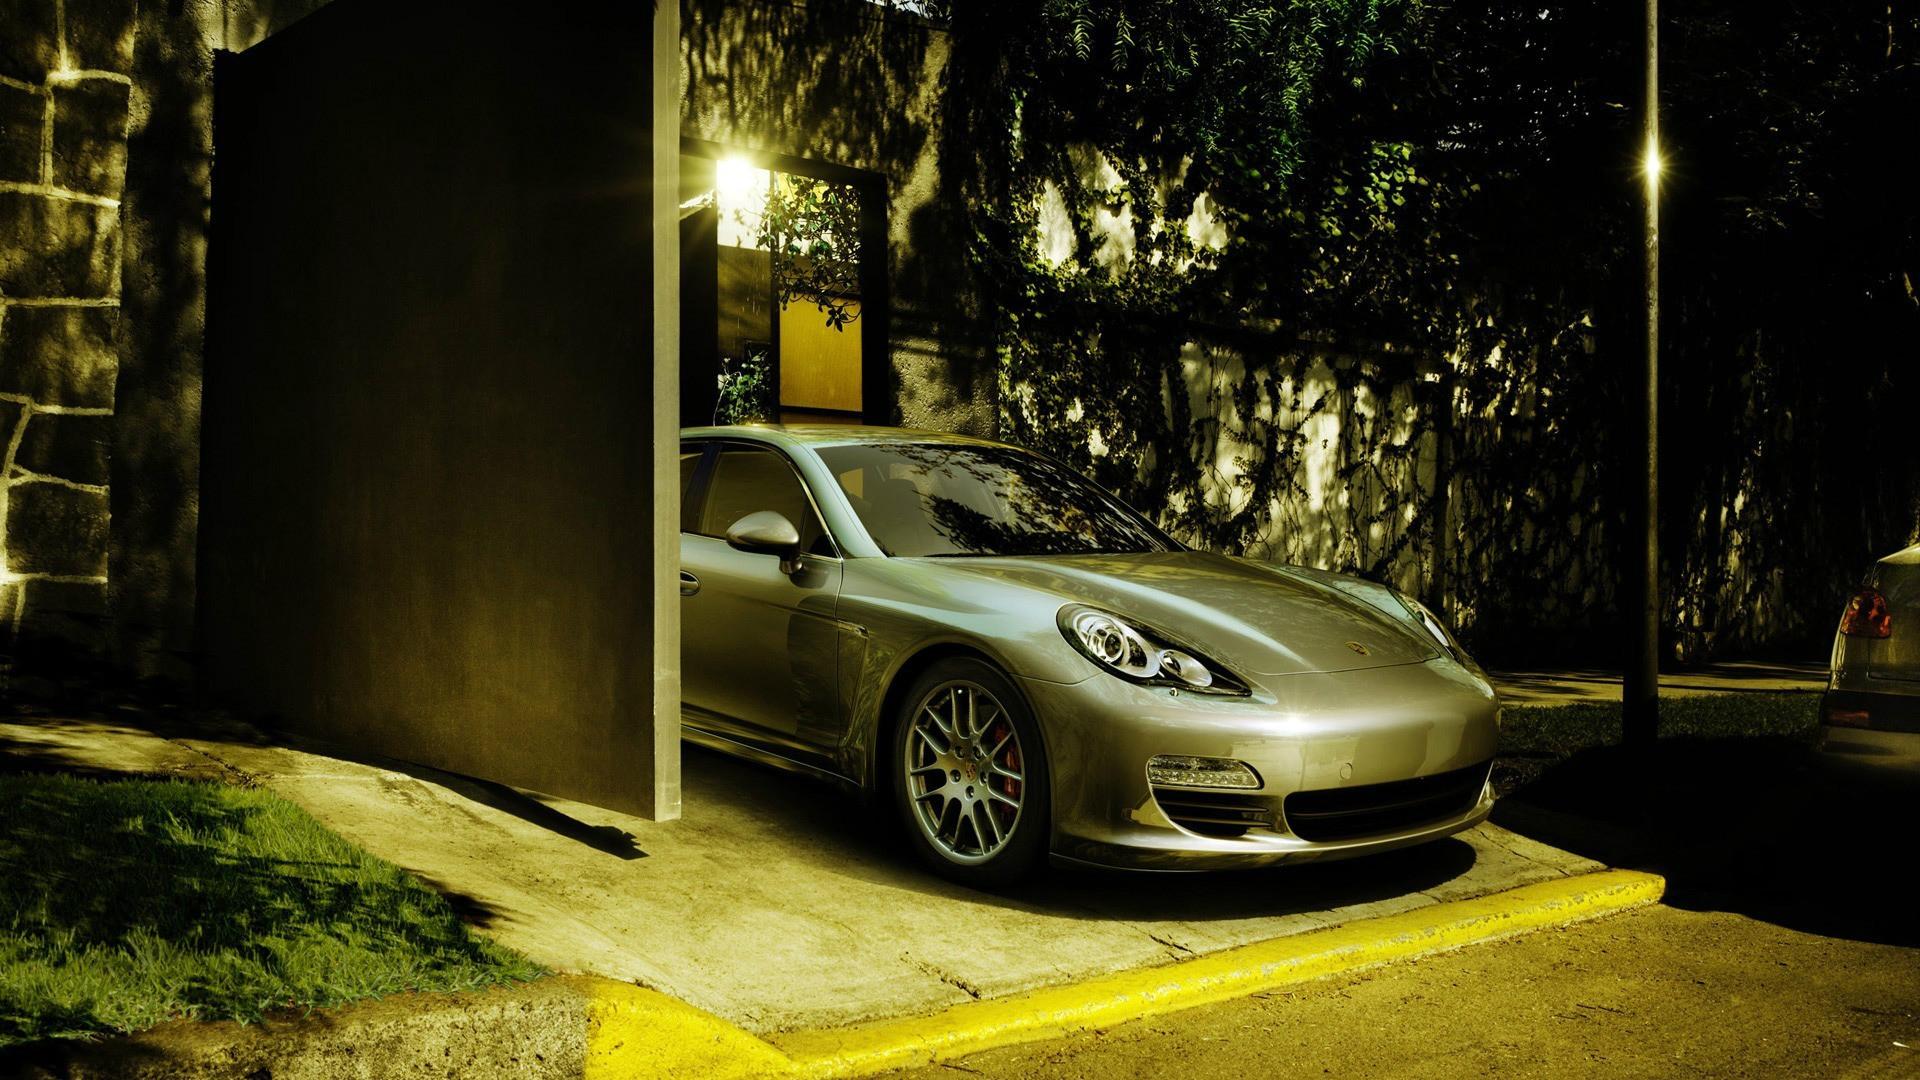 Porsche Panamera HD Wallpaper   HD 1920x1080